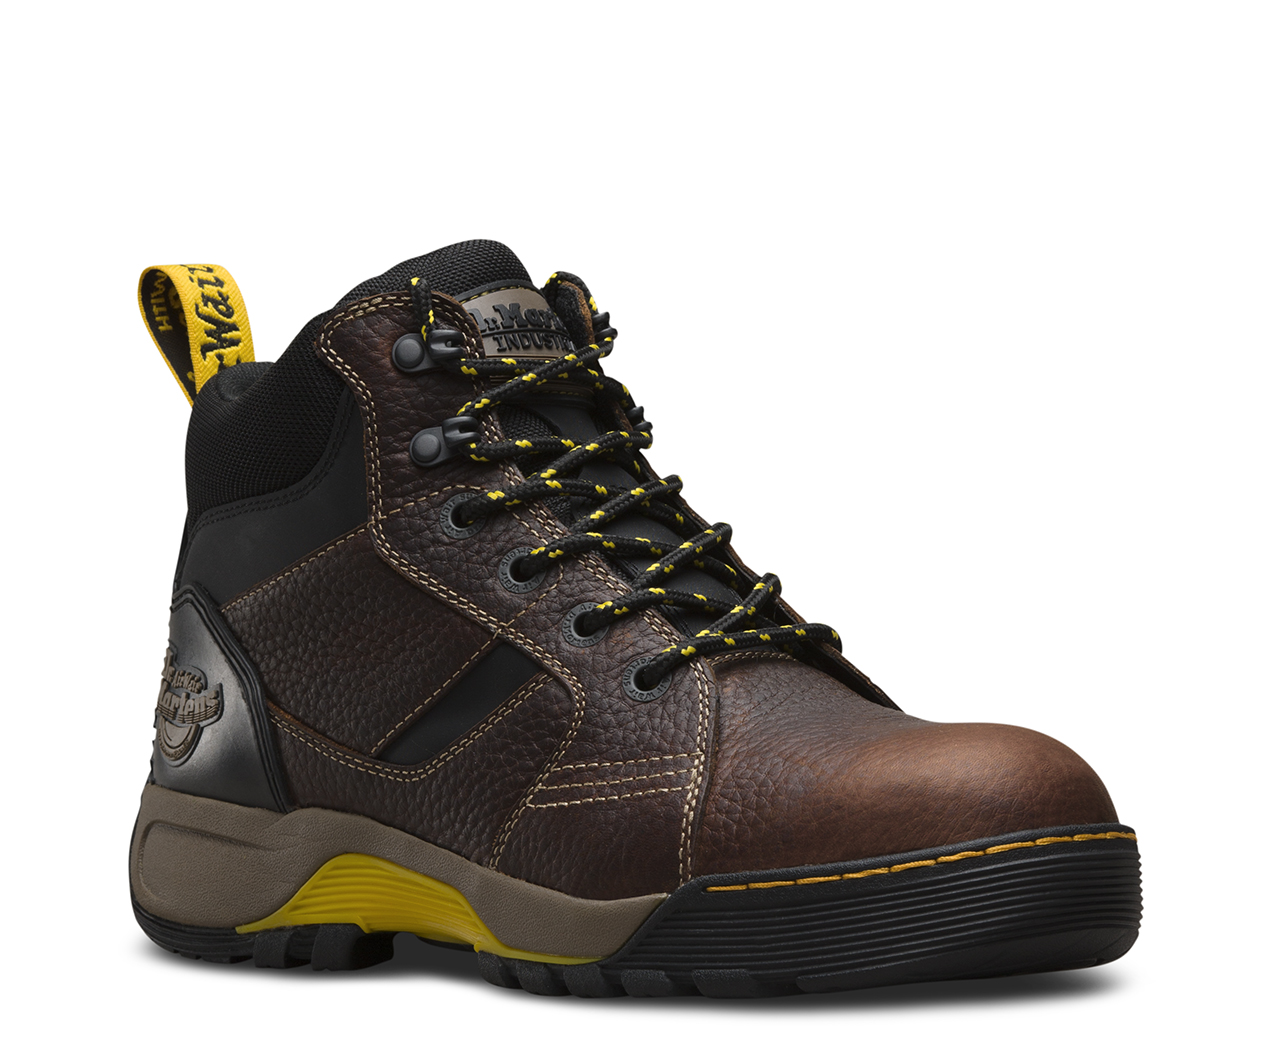 Work Boots & Shoes | Official Dr. Martens Store